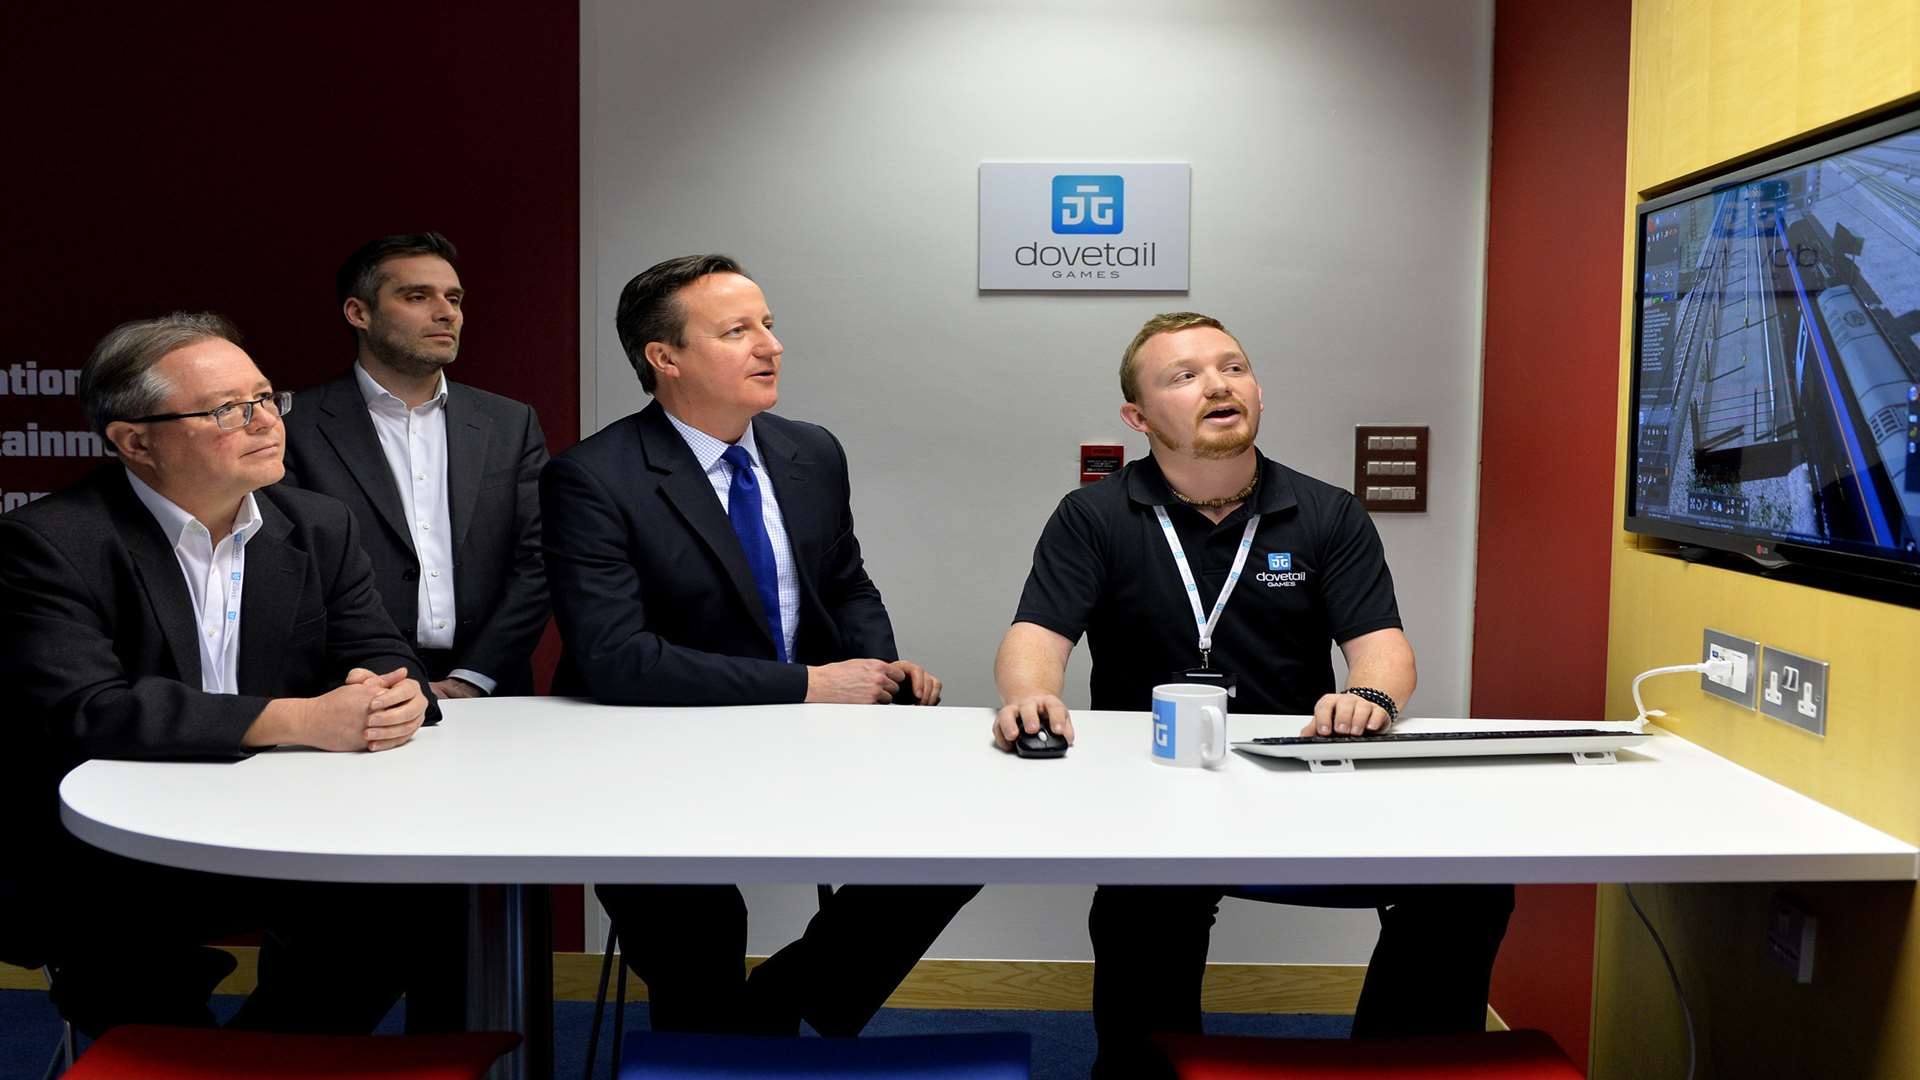 David Cameron visited Dovetail Games in Chatham last year. Picture: Crown Copyright